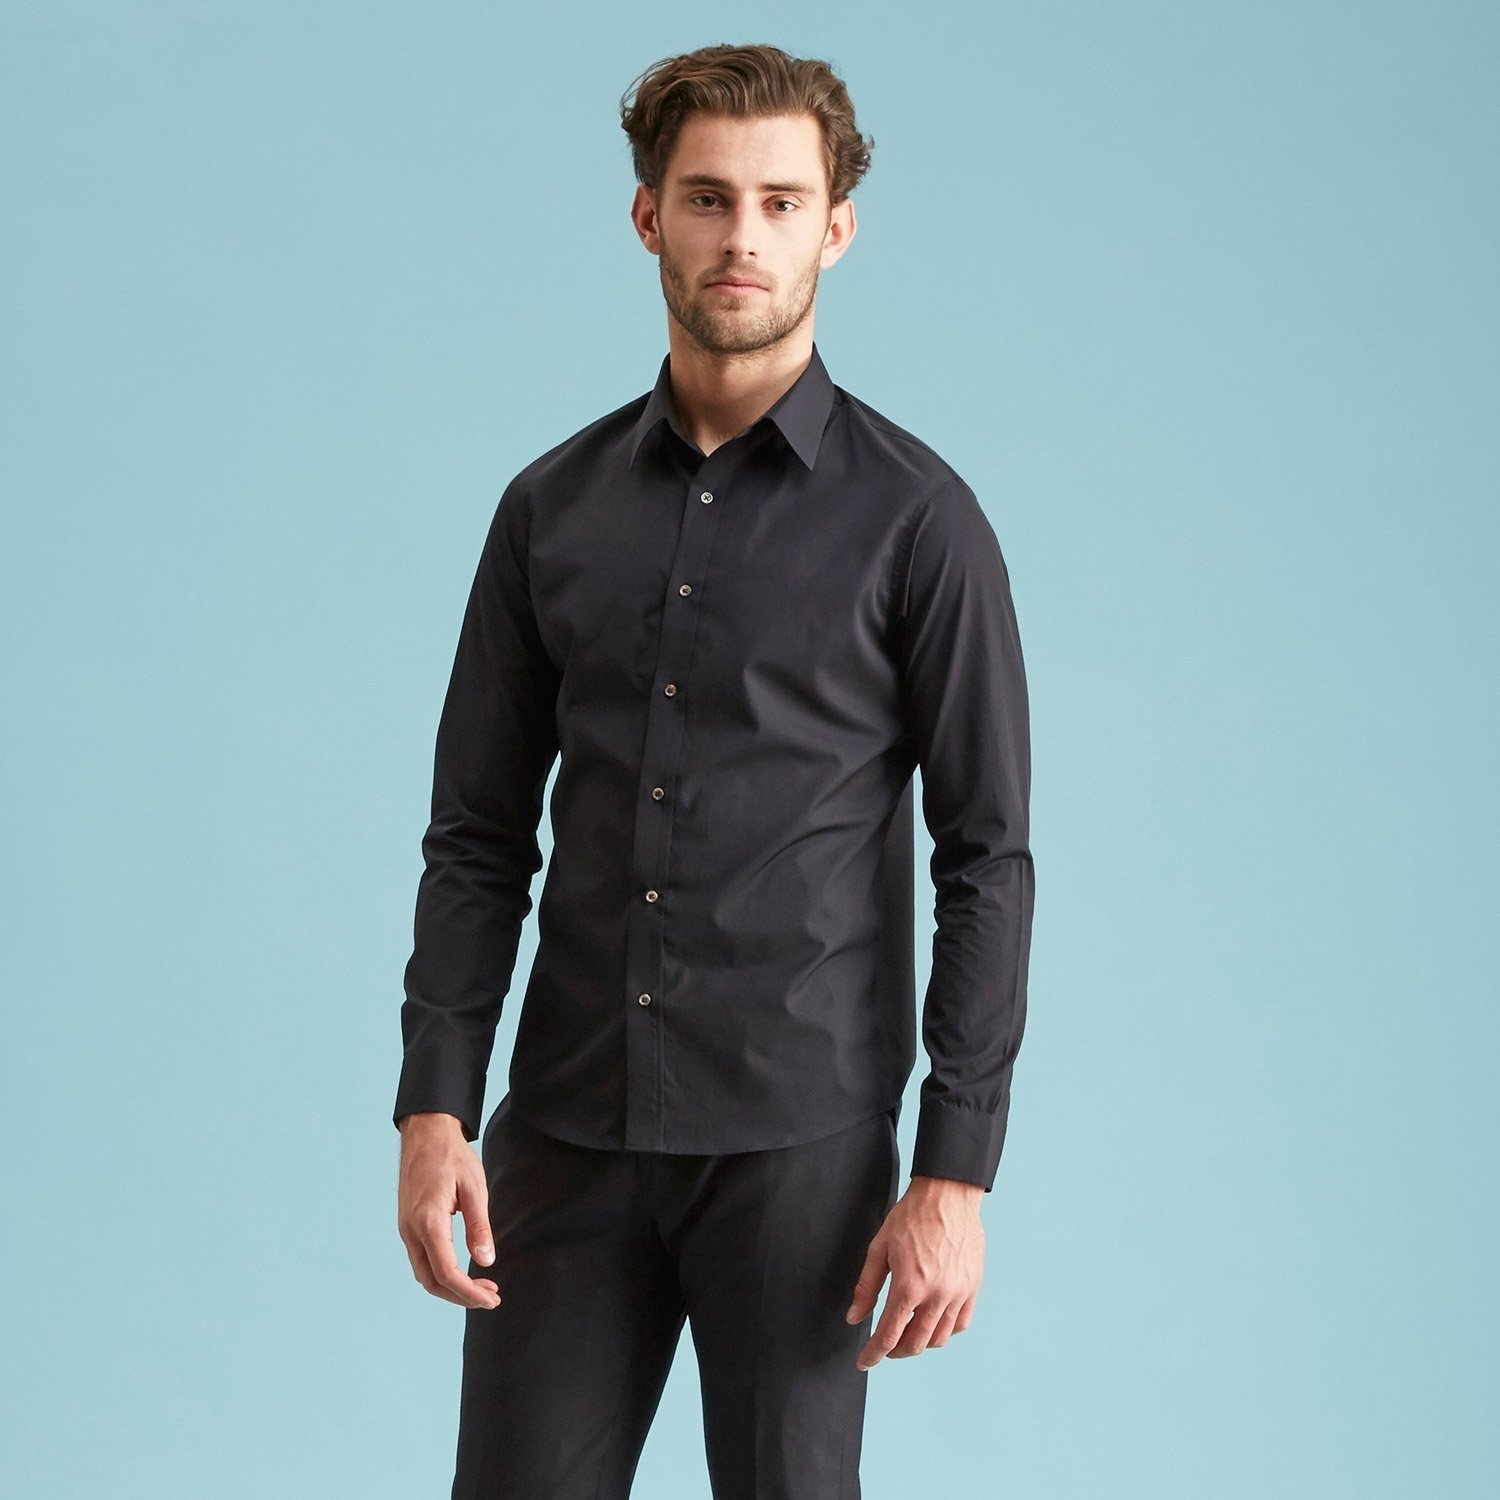 Going Out Deluxe Black Shirt - Made in America